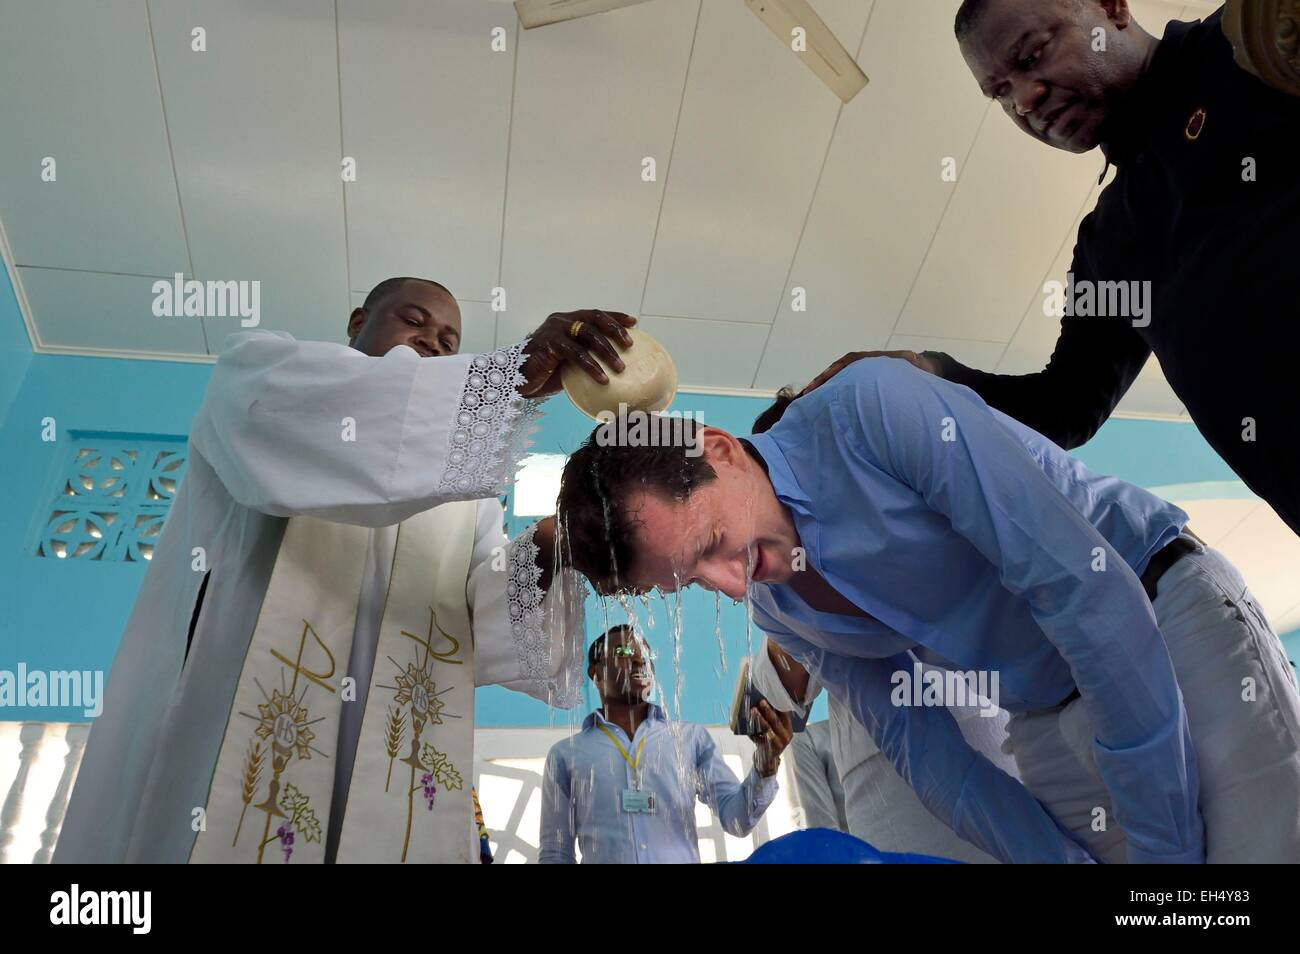 Gabon, Libreville, St. Mary's Cathedral, baptism of an adult man - Stock Image